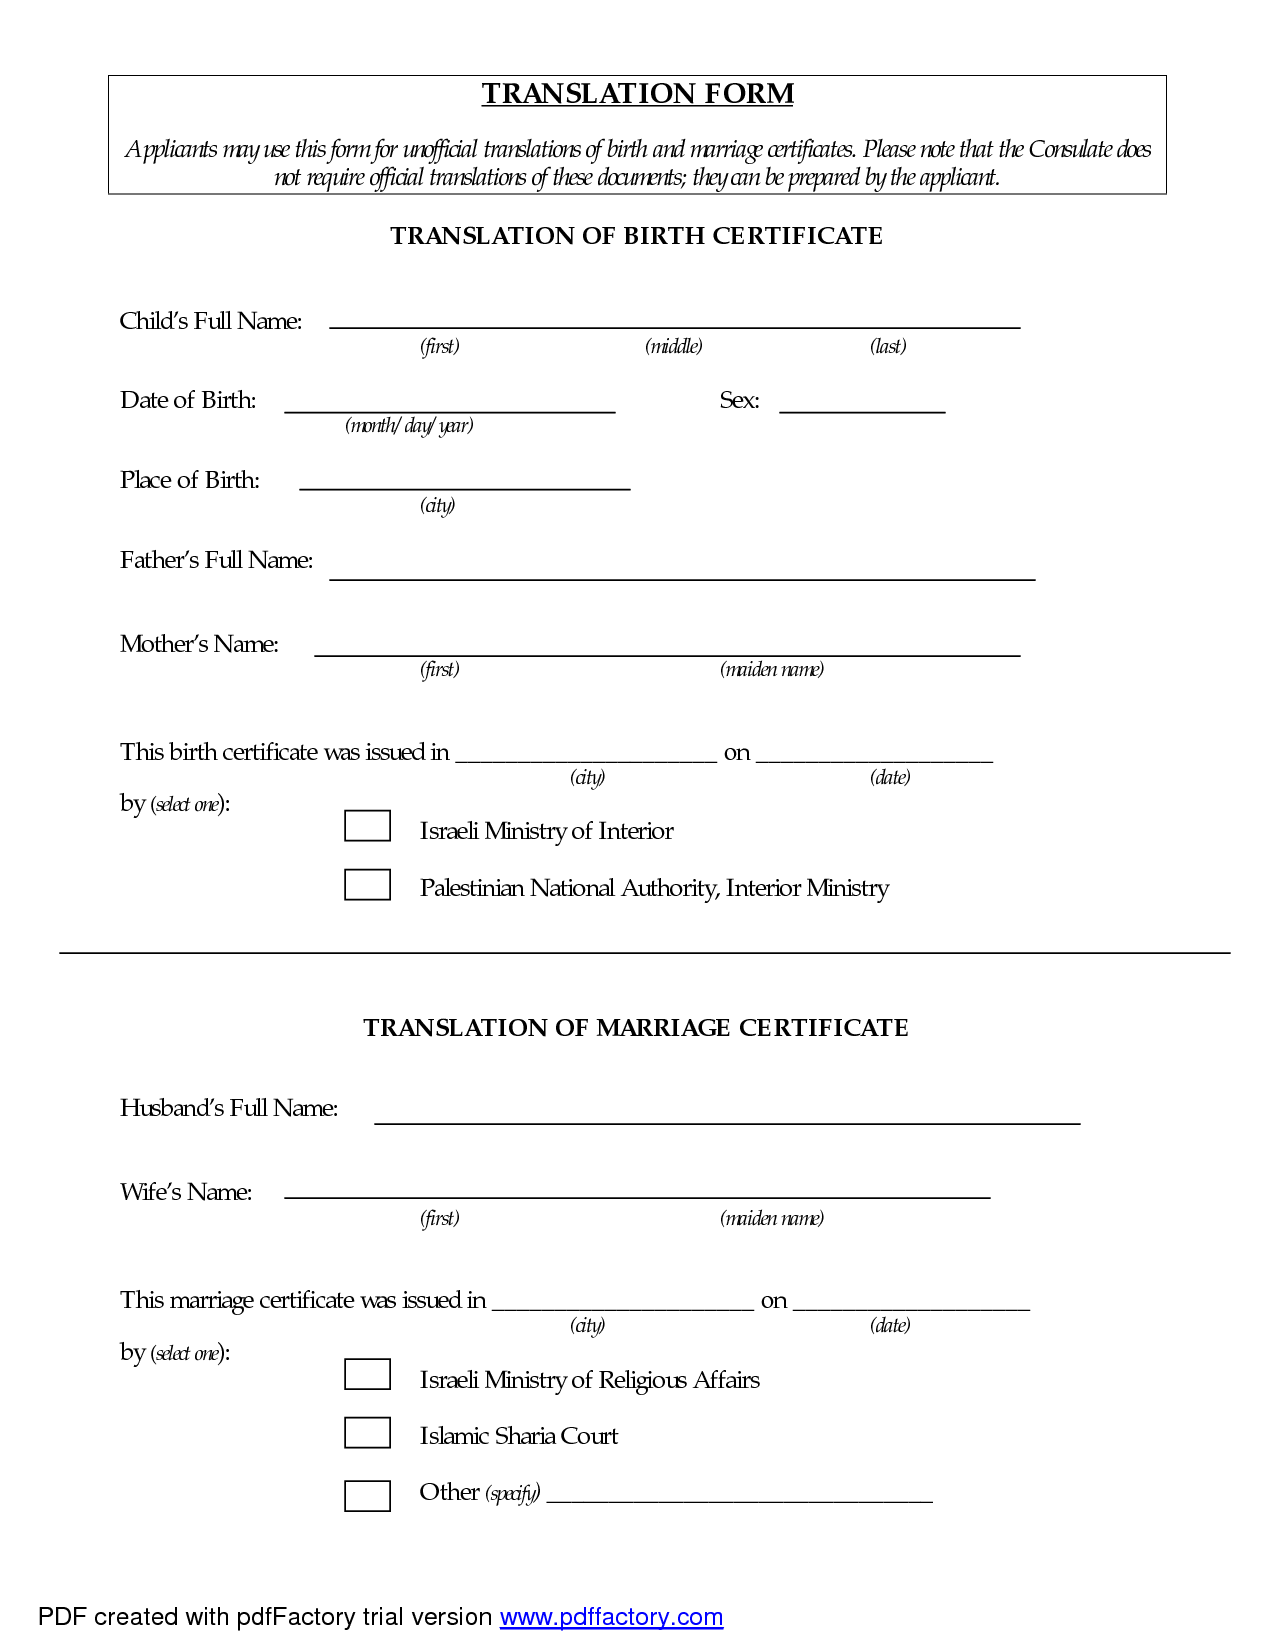 Mexican Marriage Certificate Translation Template 10